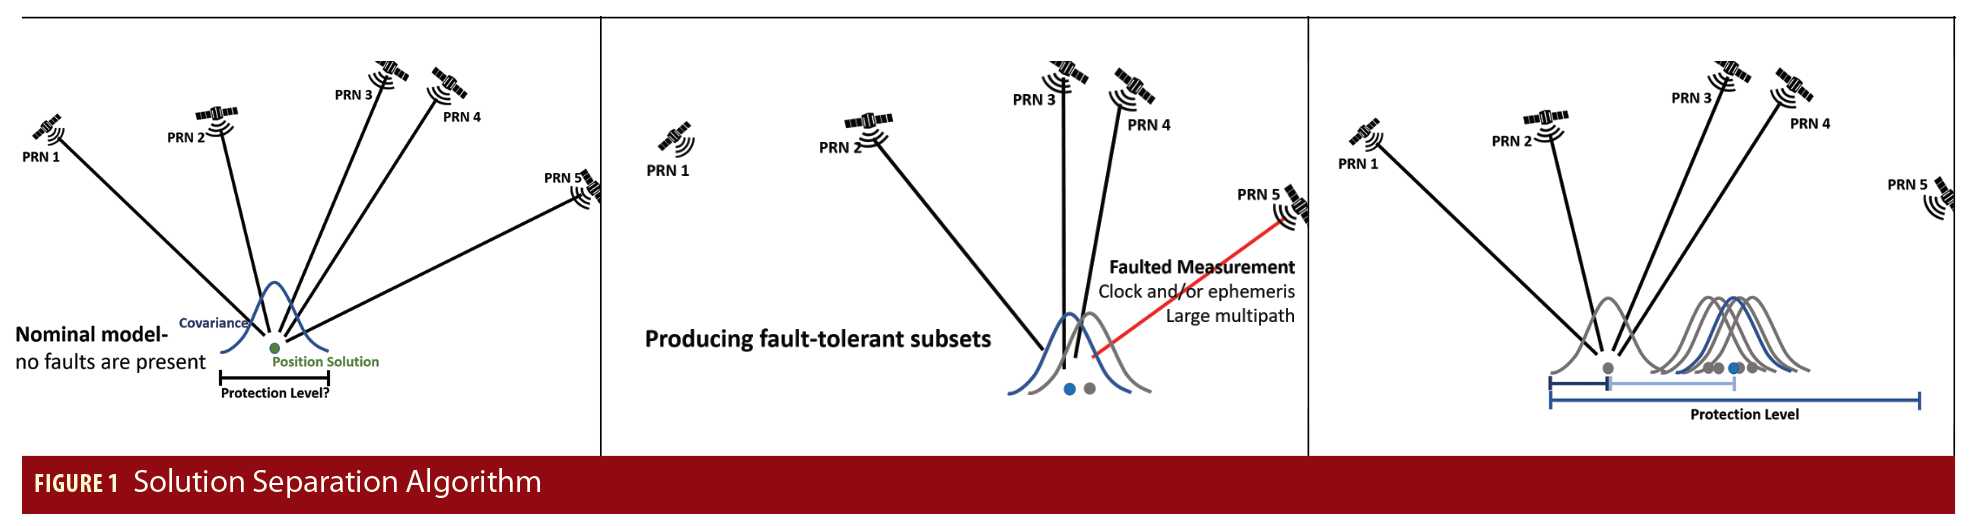 Design and Evaluation of Integrity Algorithms for PPP in Kinematic